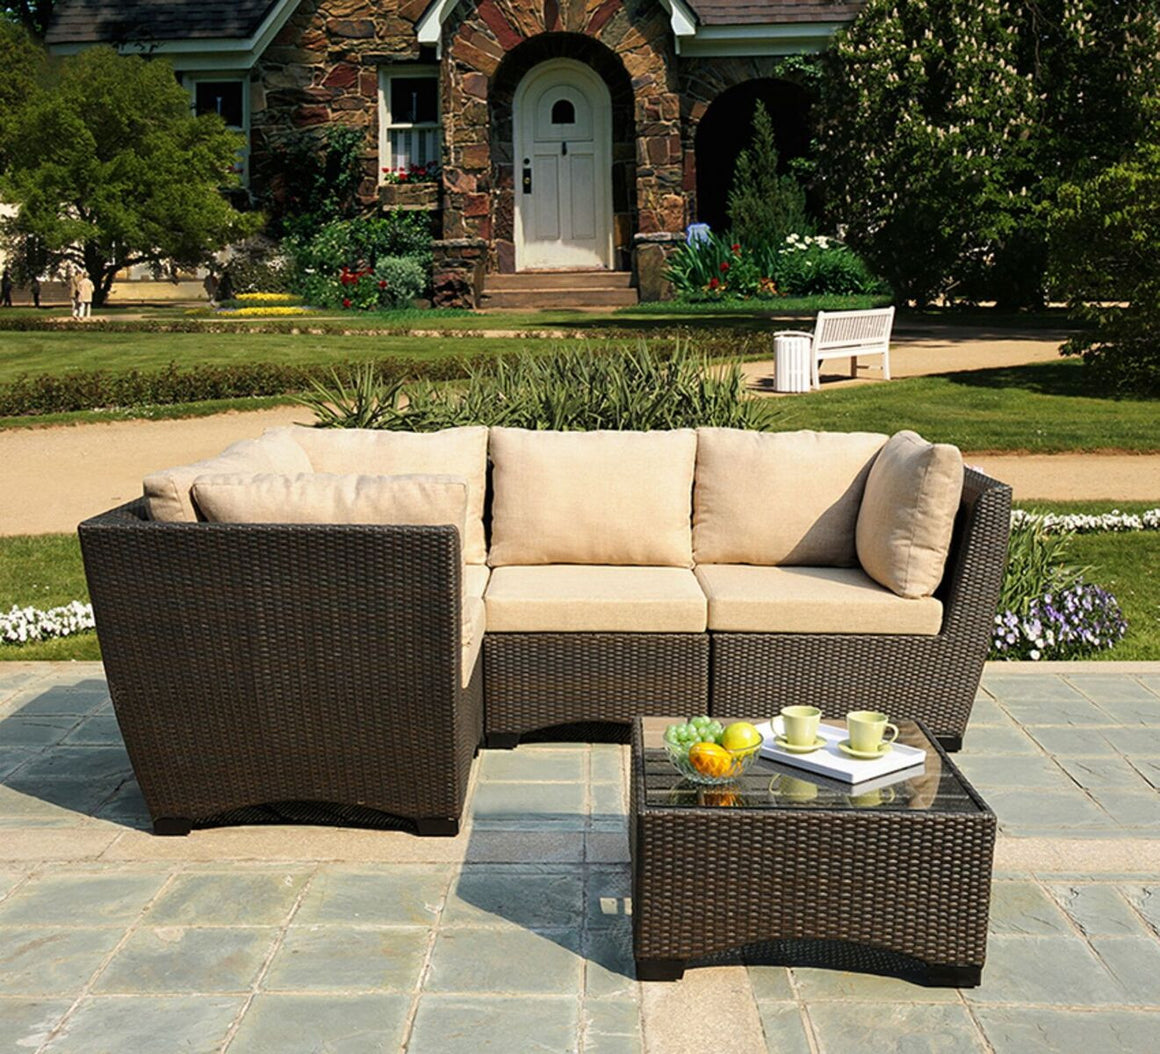 W Unlimited Infinity Collection Outdoor Garden Patio Furniture 5PC set w/ Table , W Unlimited- grayburd